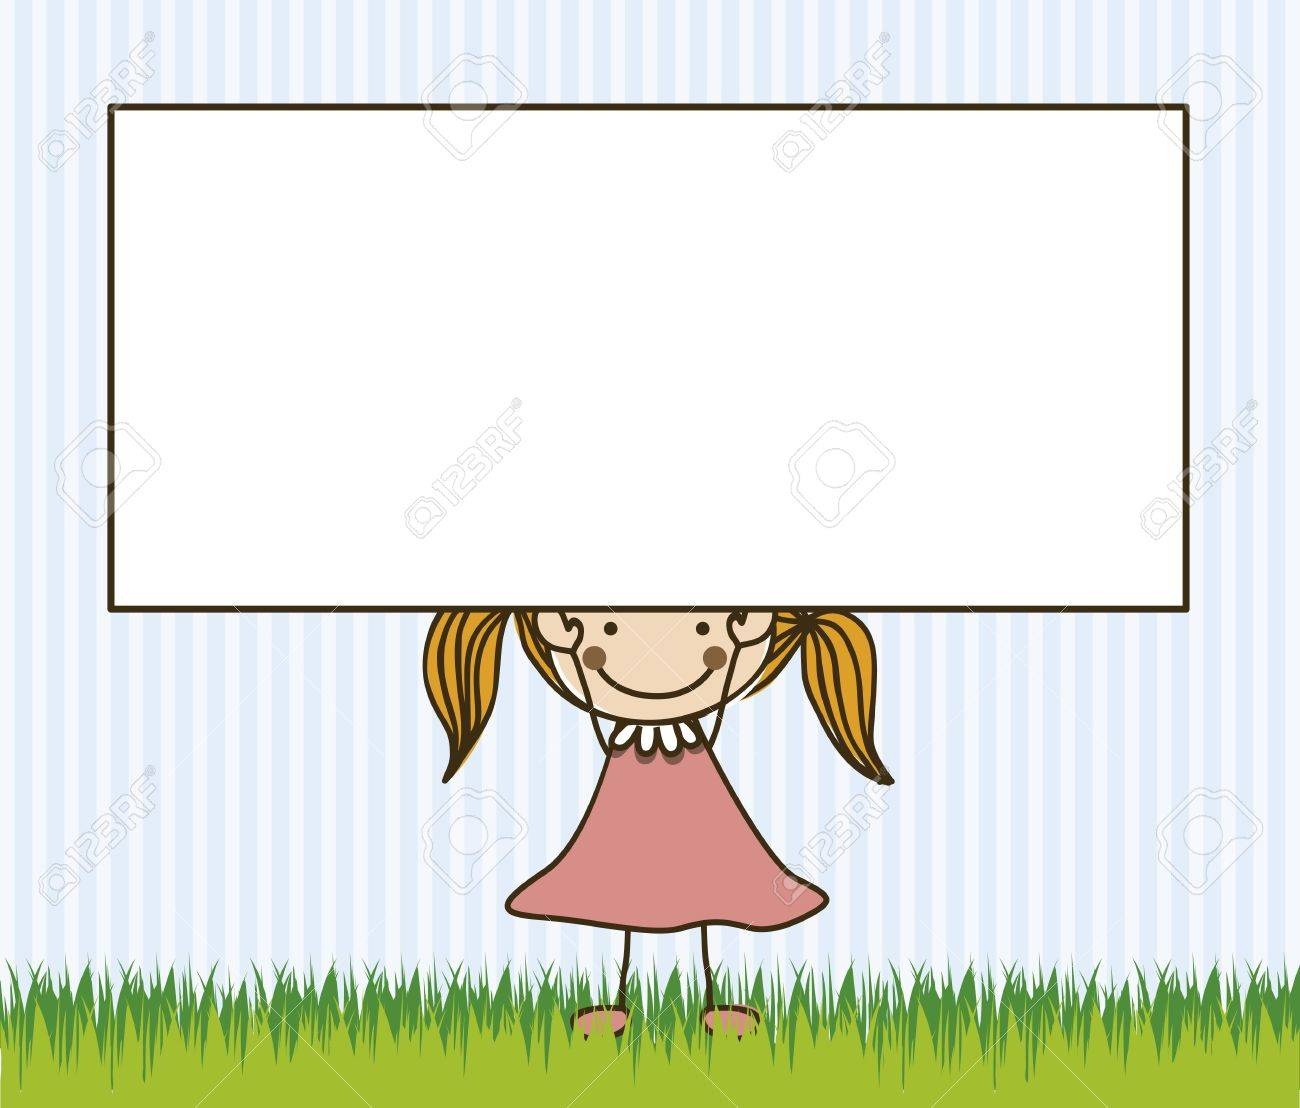 Illustration of girl, in cartoon style and sketch, vector illustration Stock Vector - 17431746